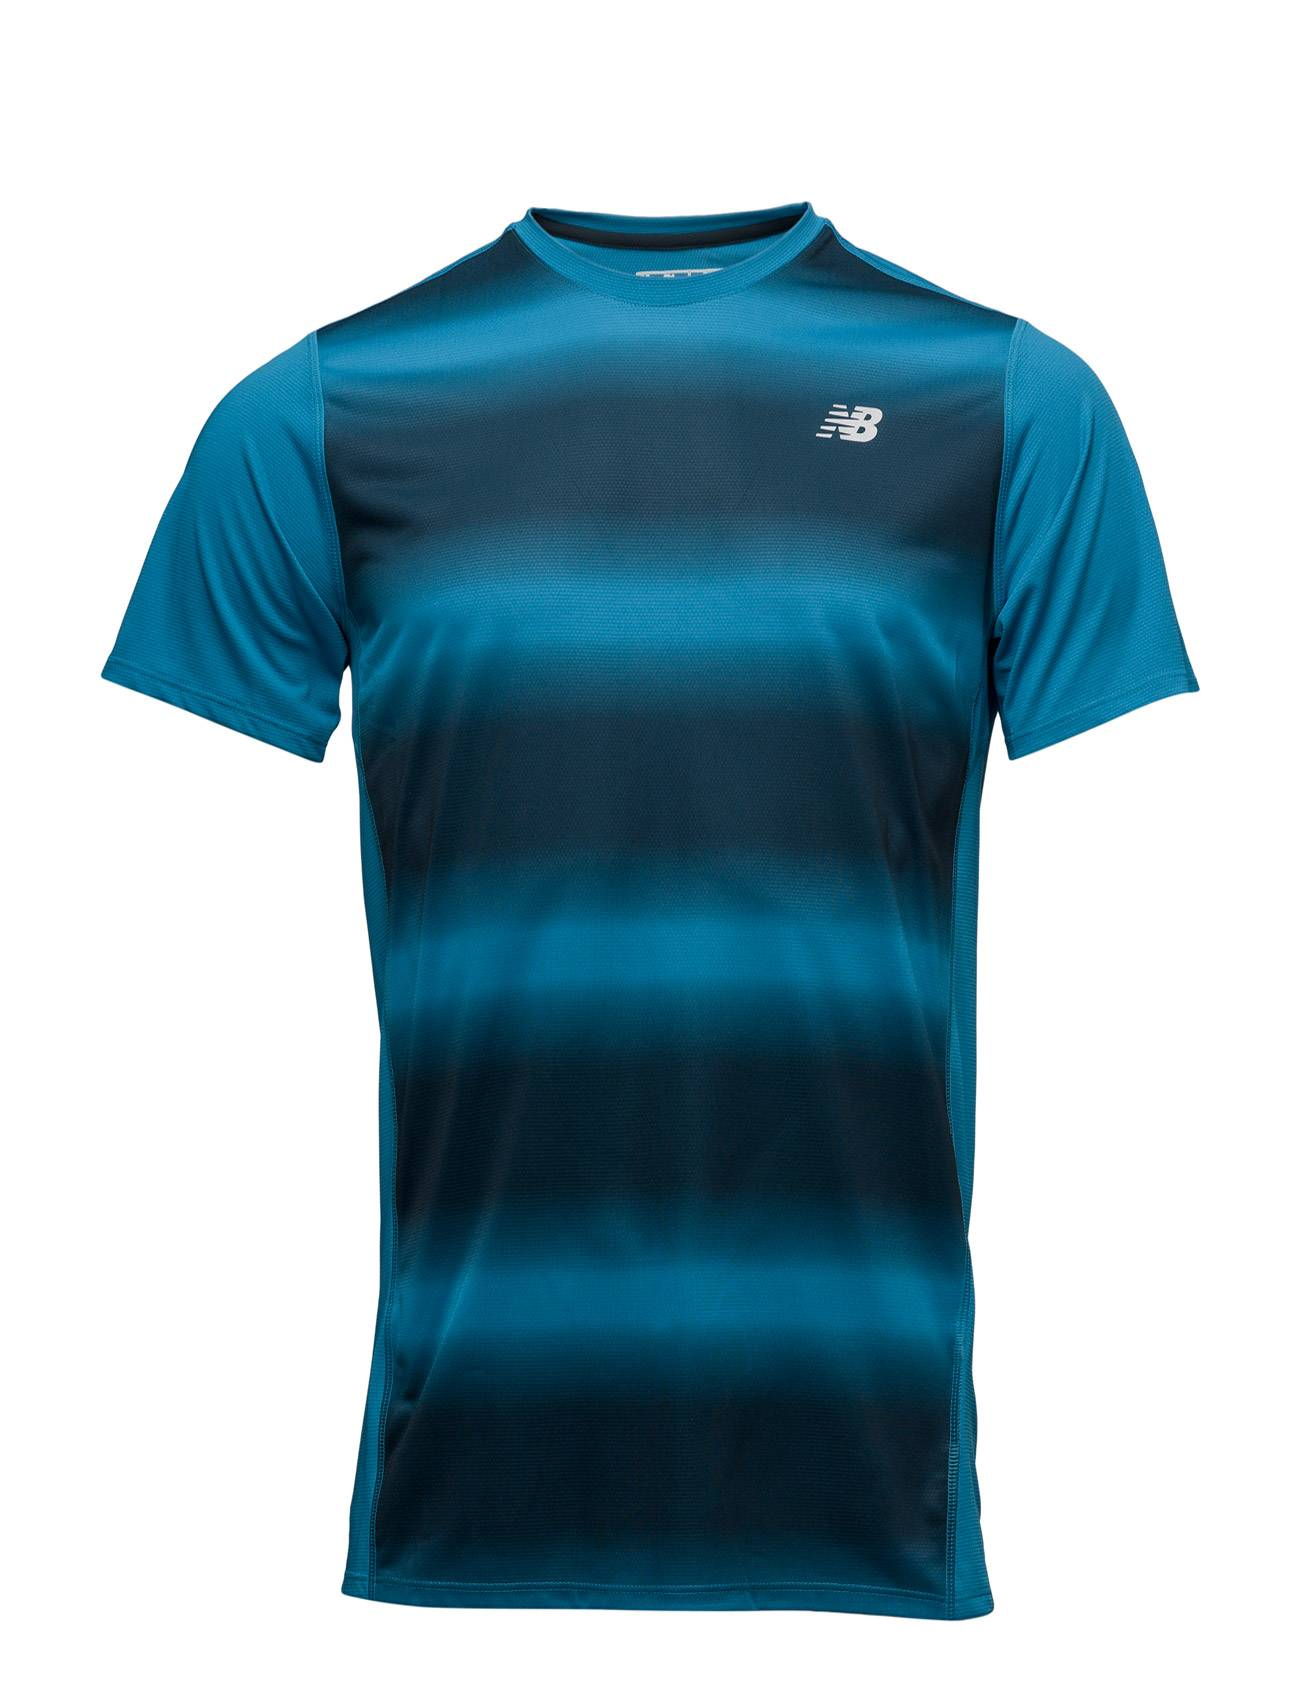 New Balance Accelerate Ss Graphic Top